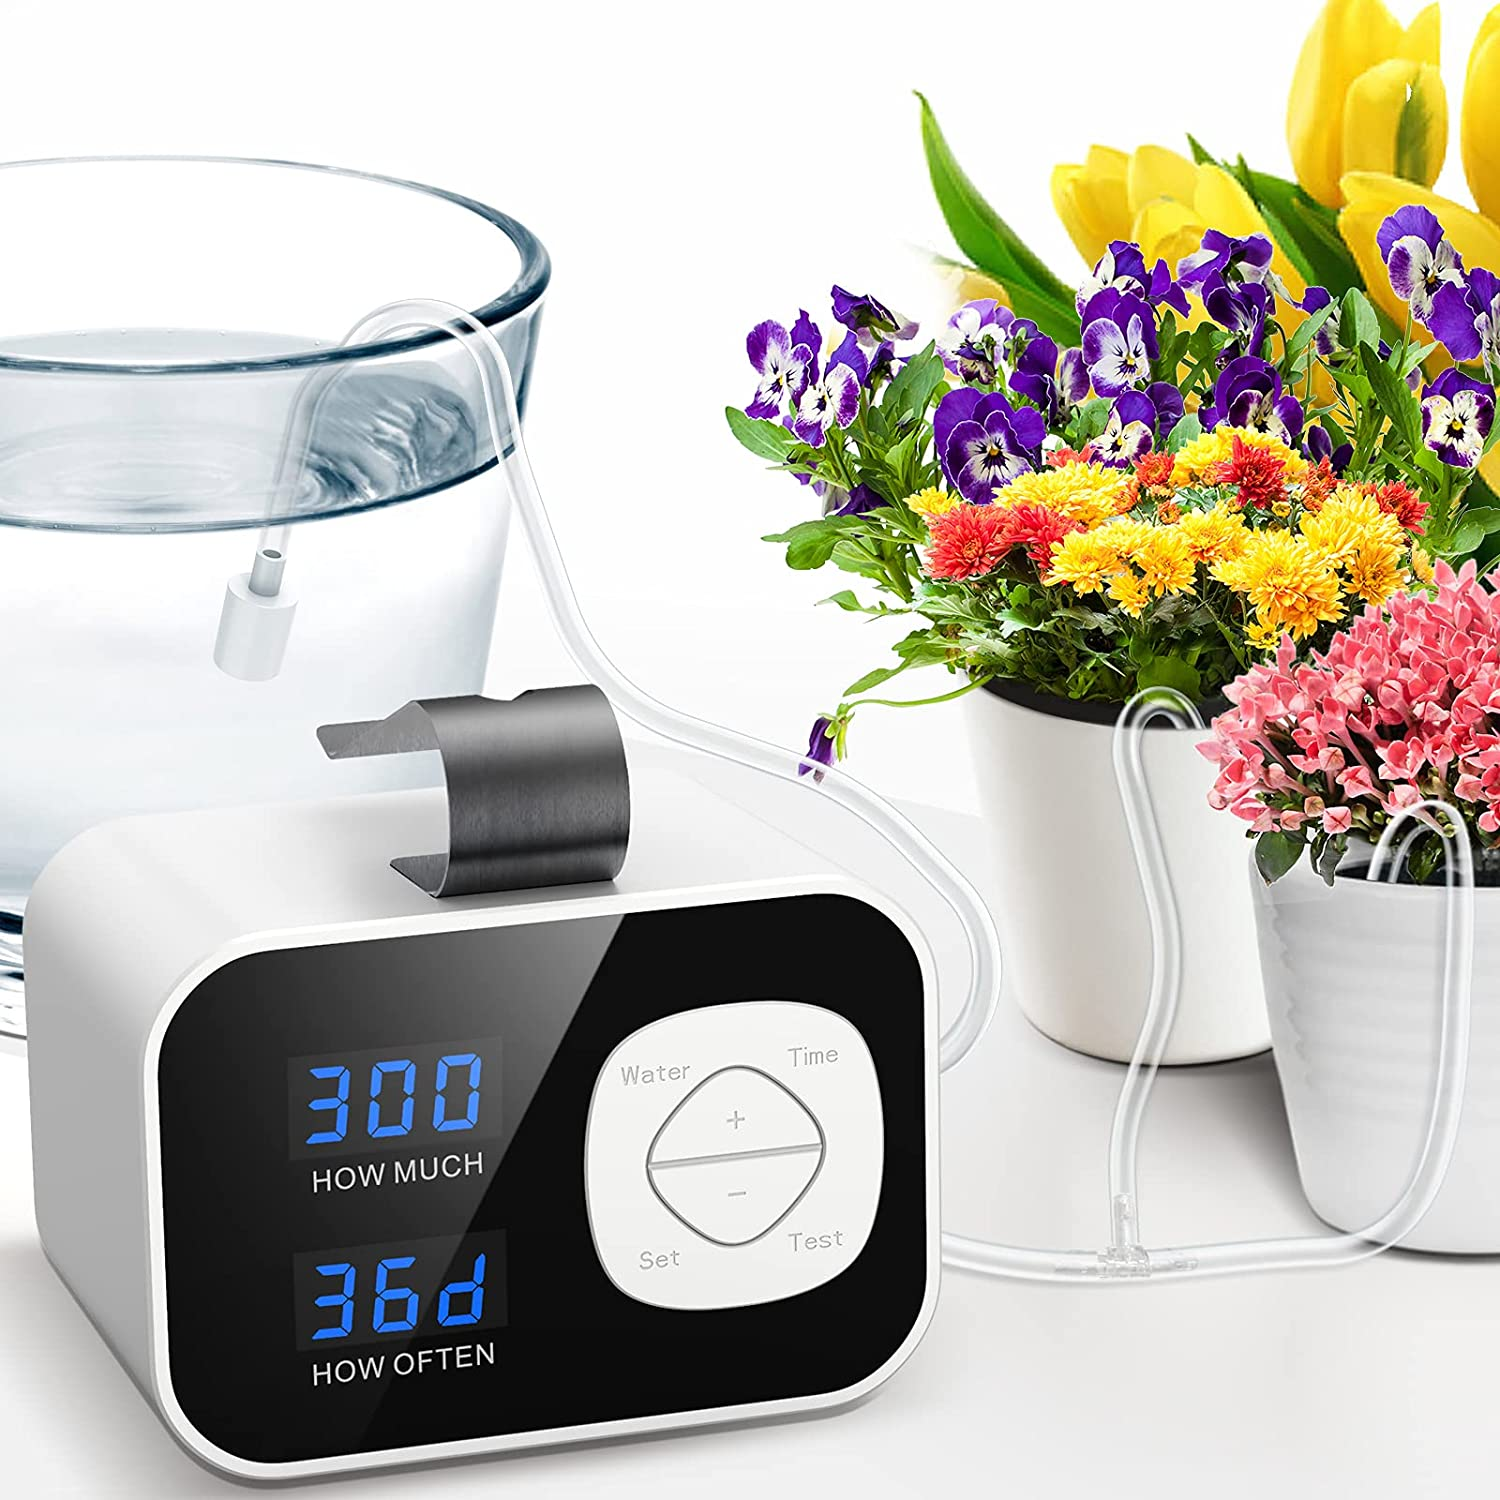 Kollea Reliable Sale item Automatic Watering S Max 67% OFF Self Plant System